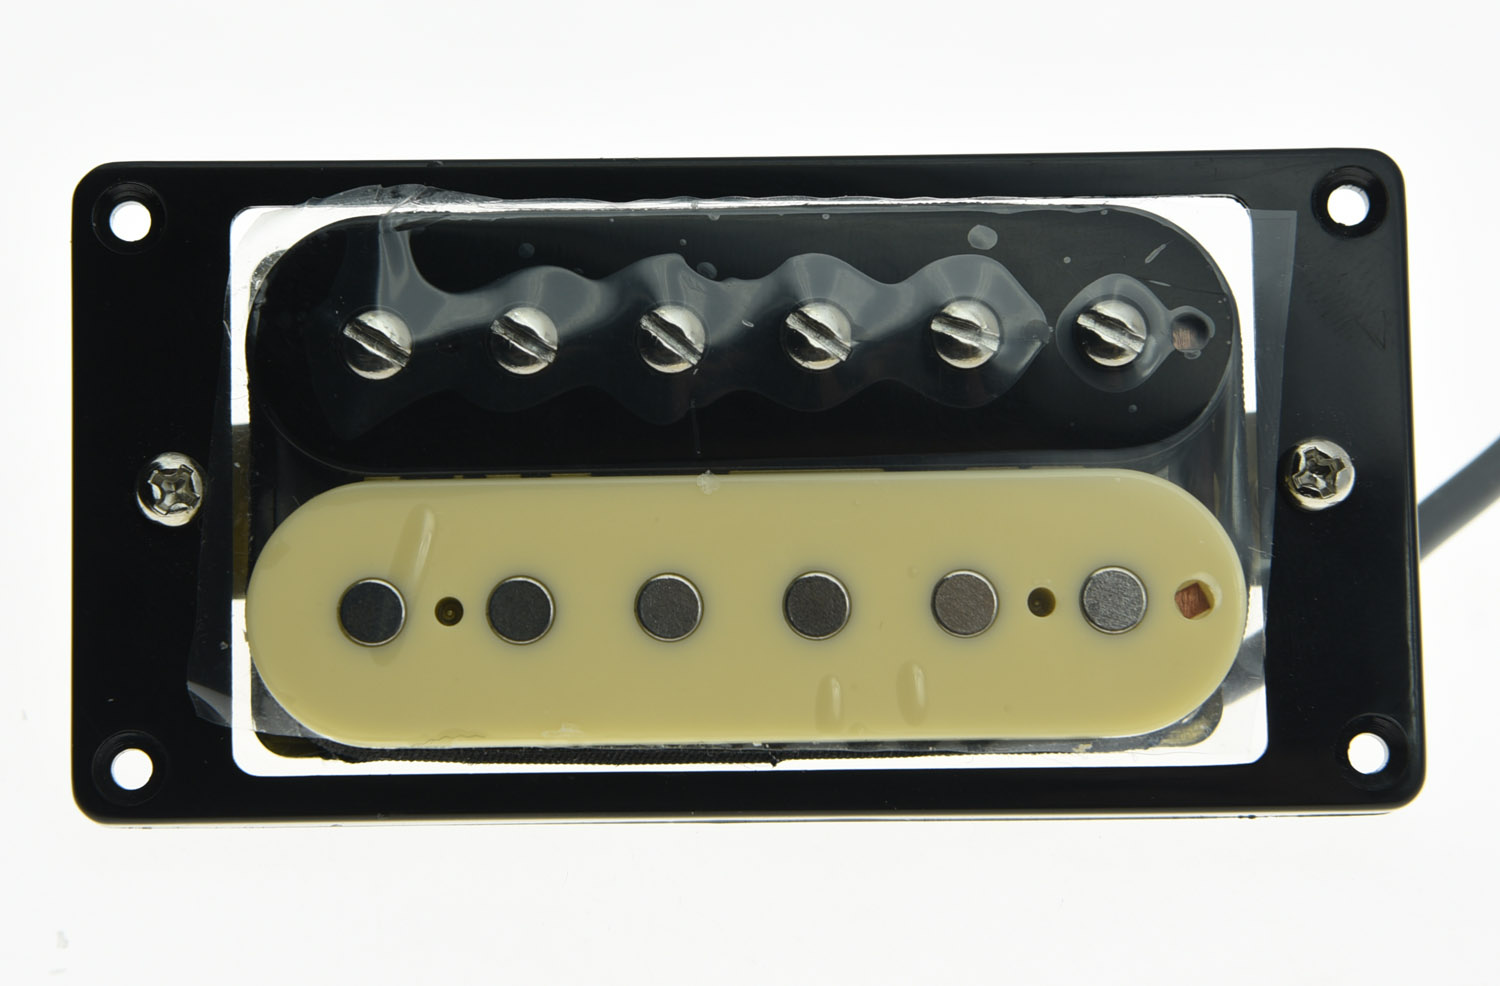 KAISH Alnico V Guitar Humbucker NECK Pickup 50's Vintage Sound Pickups Zebra Style belcat electric guitar pickups humbucker double coil pickup guitar parts accessories bridge neck set alnico 5 gold